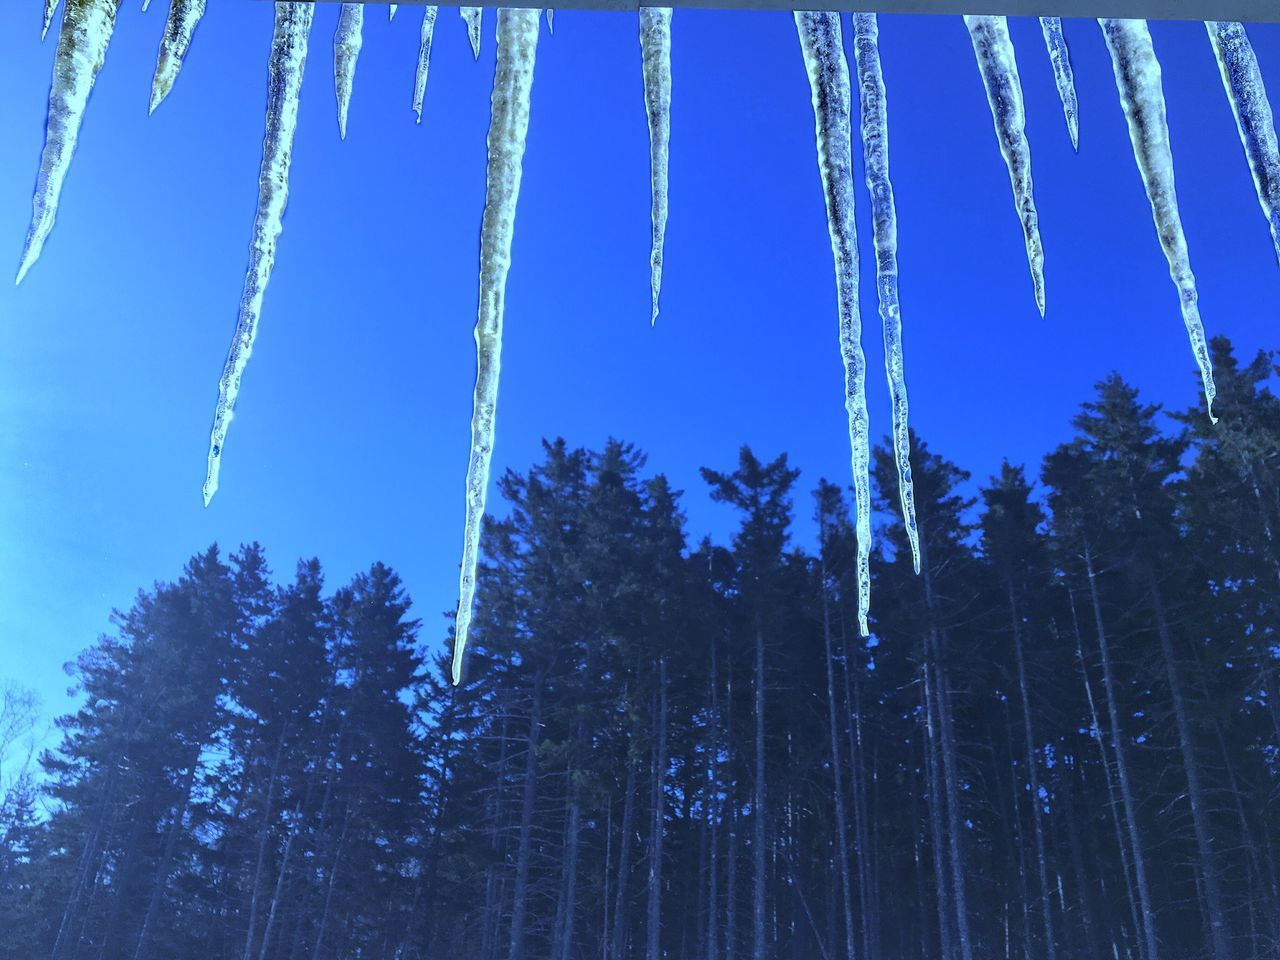 Outdoors Tree Blue Nature Spring Low Angle View Snow Cold Temperature Beauty In Nature Scenics Growth Sky Clear Sky Tranquility Tranquil Scene Day Forest No People Branch Treetop Icicles